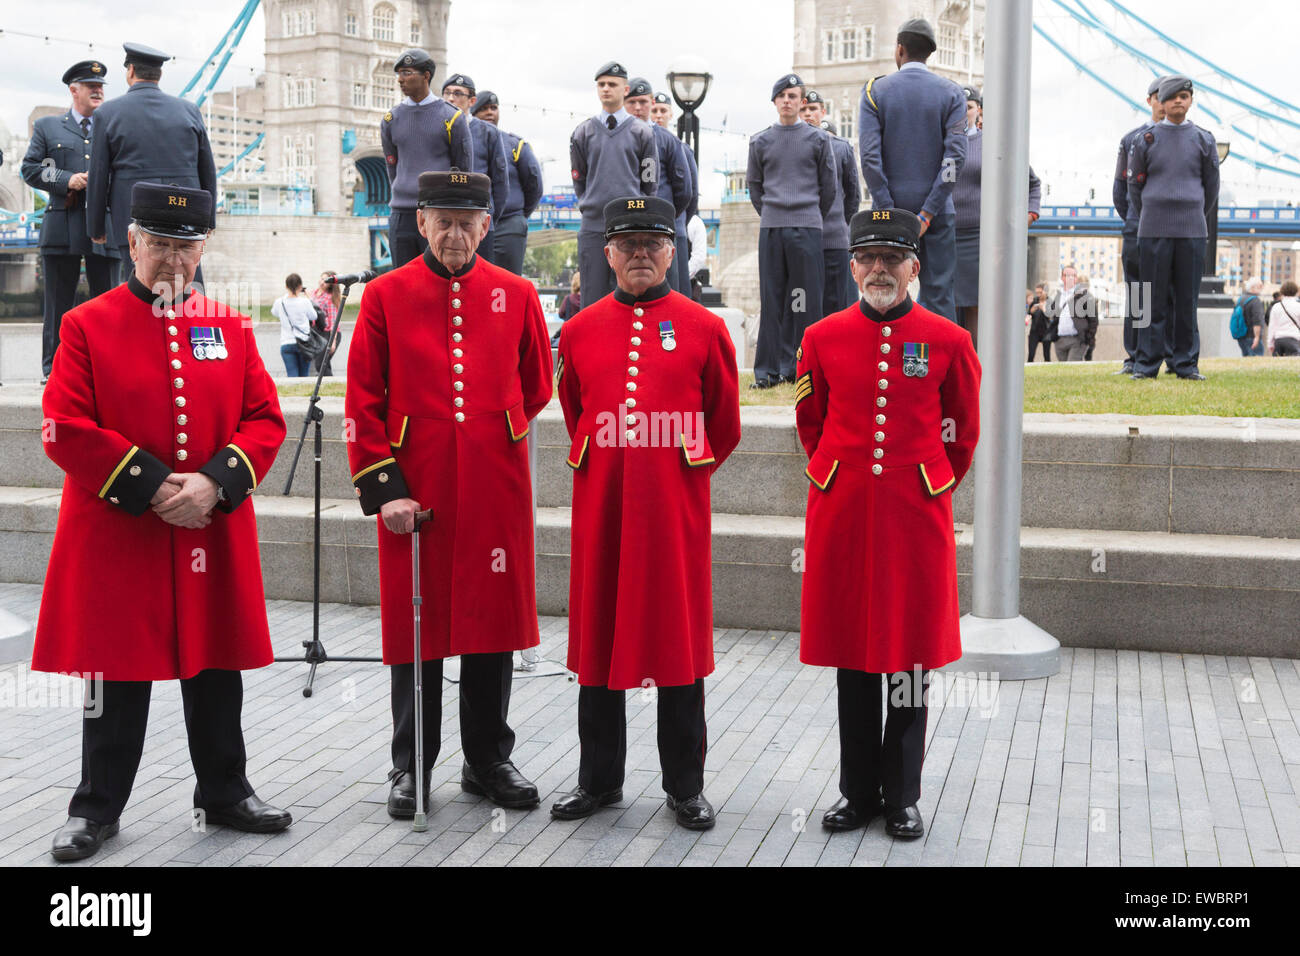 London, UK. 22 June 2015. Four Chelsea Pensioners pose in front of Royal Airforce Air Cadets and Tower Bridge. Boris - Stock Image